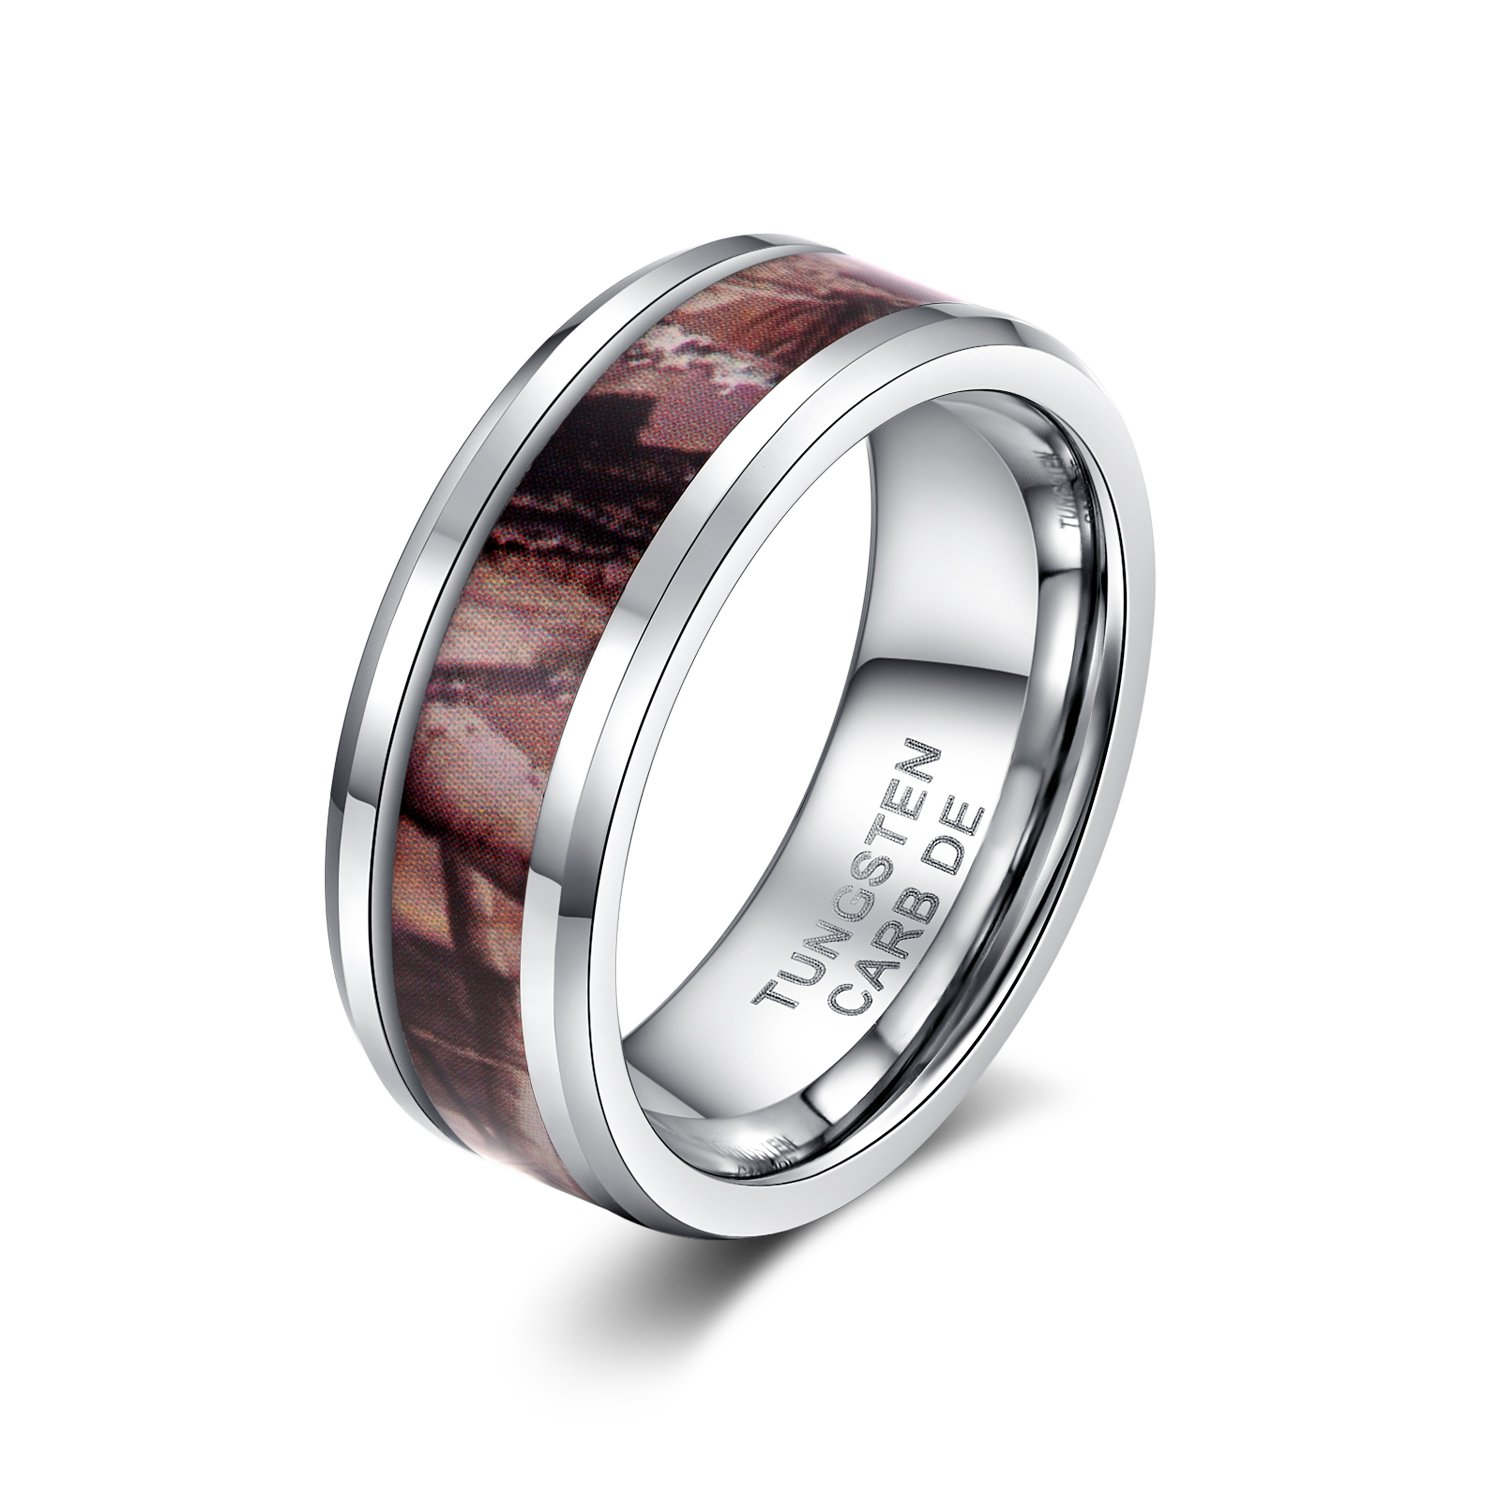 Hamany 8mm Tungsten Carbide Ring Mens Camo Hunting Camouflage